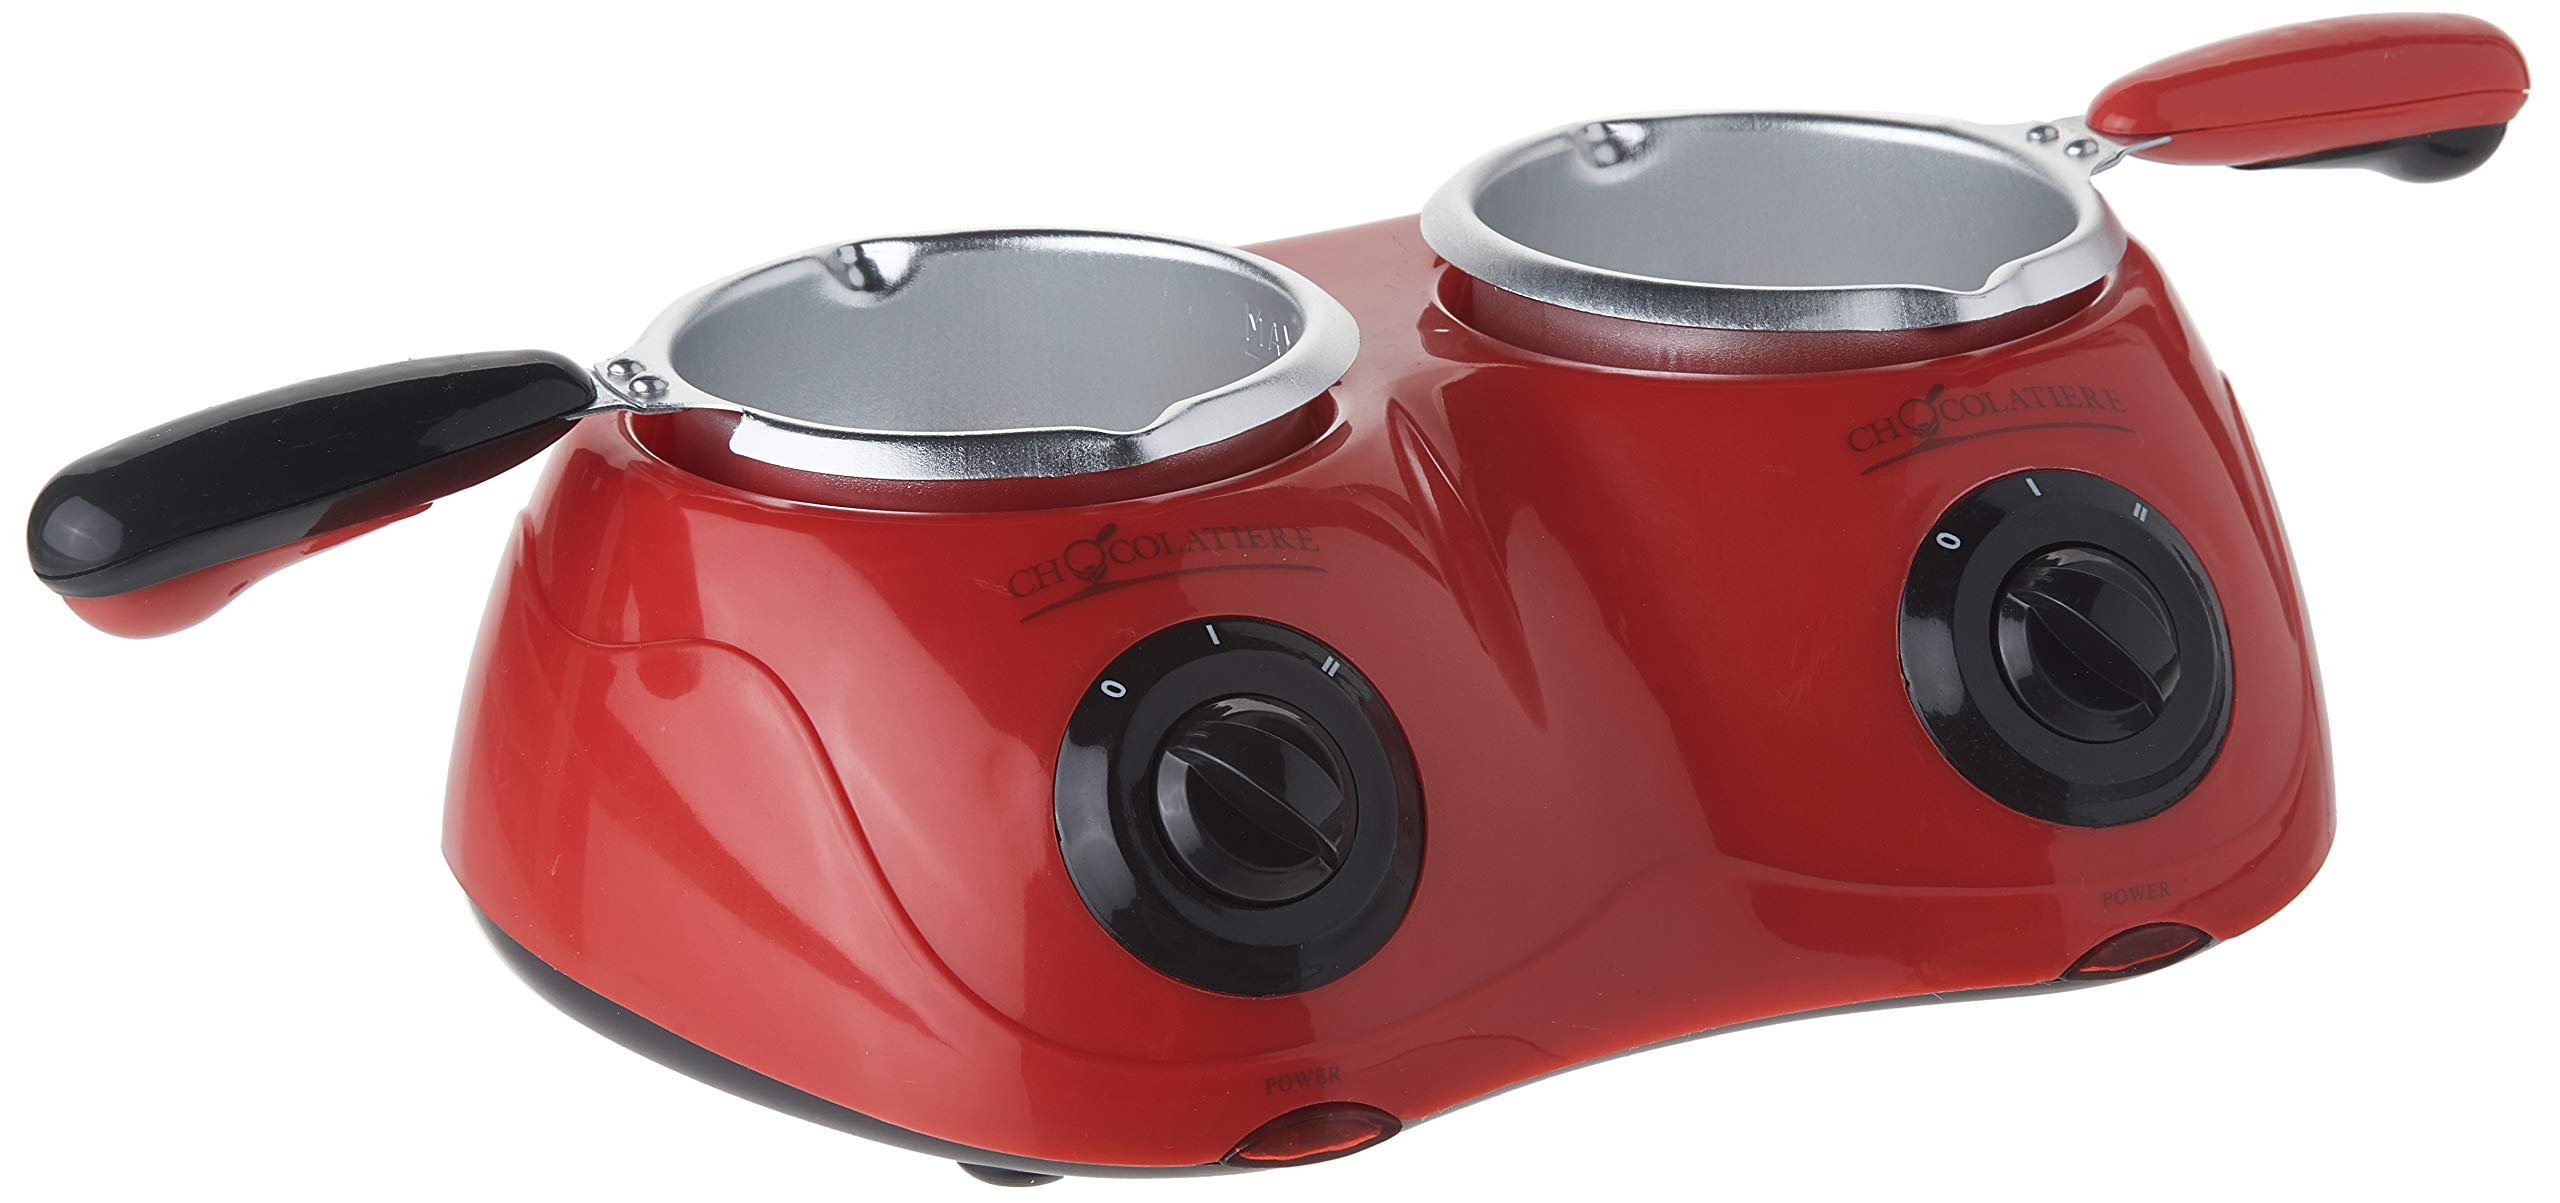 Total Chef CM20G Deluxe Chocolatiere Electric Fondue with Two Melting Pots (Red) by Koolatron